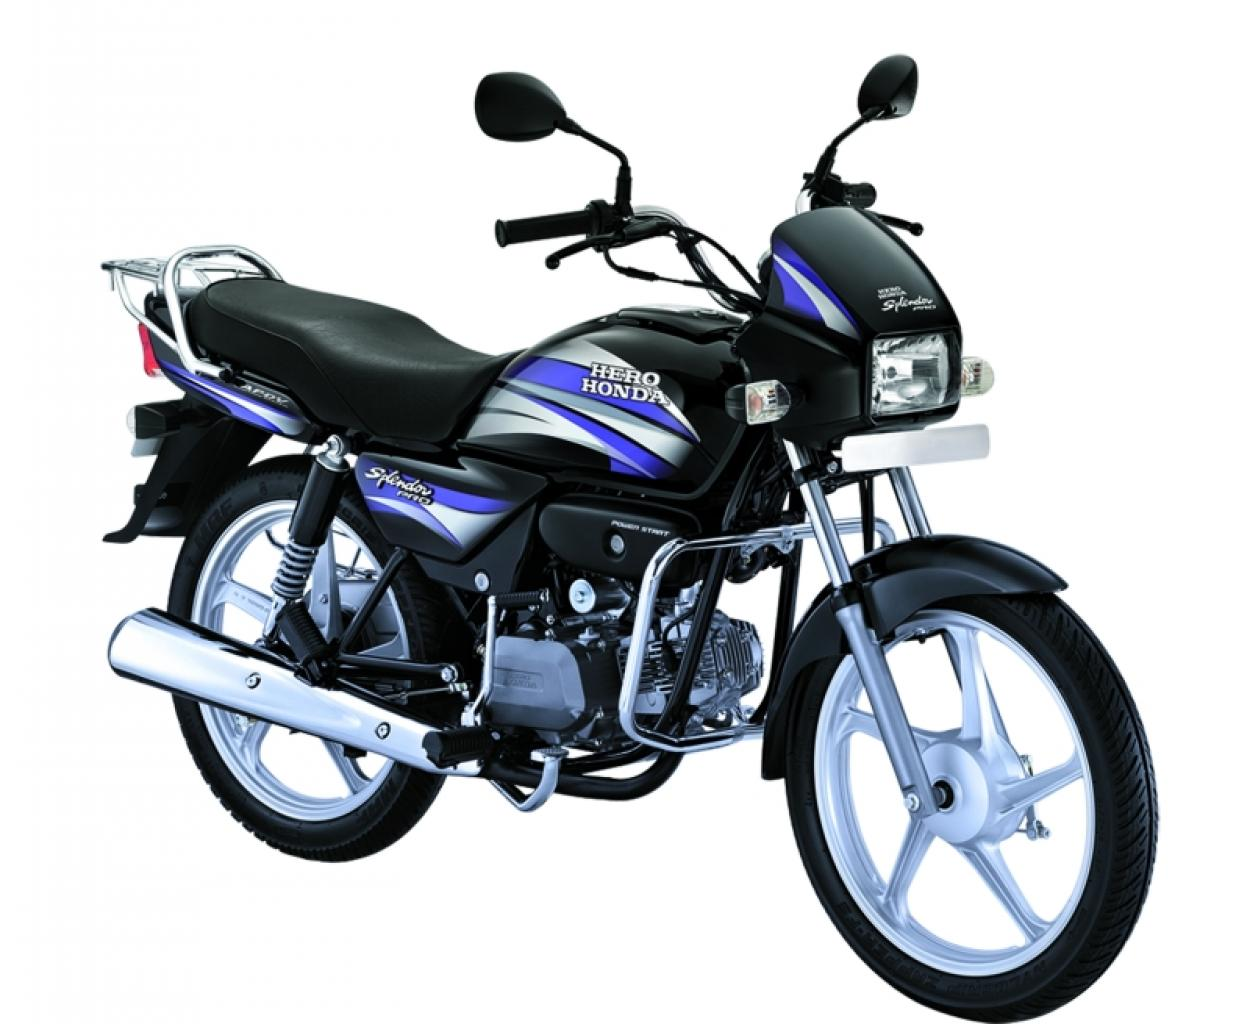 hero moto corp Access to case studies expires six months after purchase date publication date: august 28, 2015 after a 26 year partnership in the indian two-wheeler industry, hero and honda parted ways.